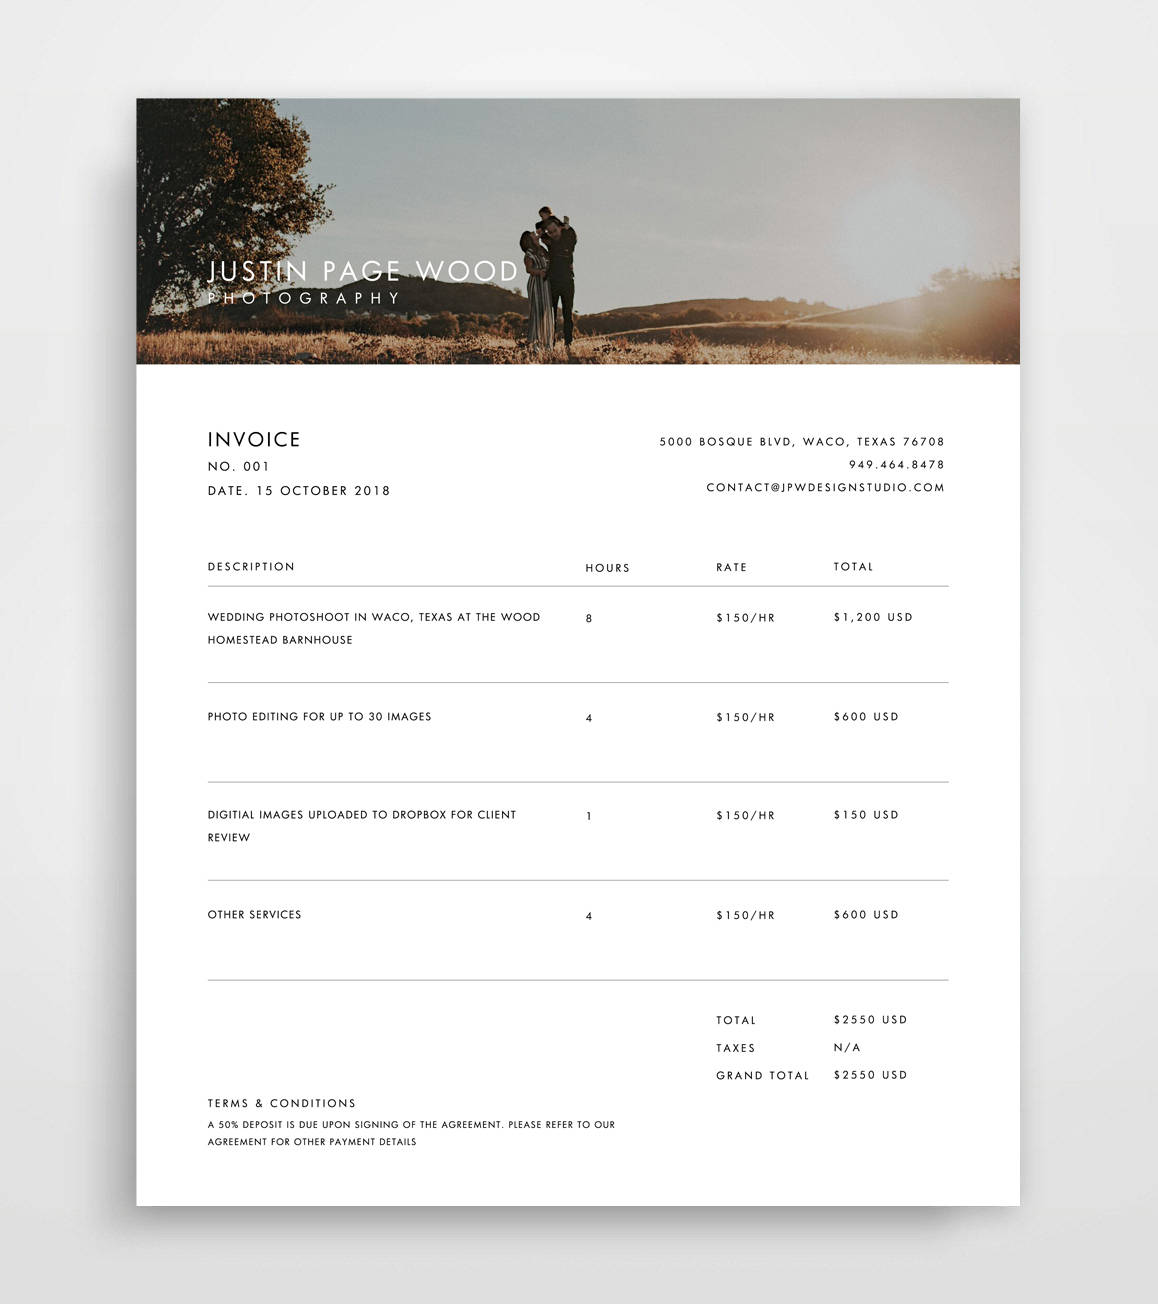 Professional Invoice Samples 10 Designs to Inspire You - photography invoice sample